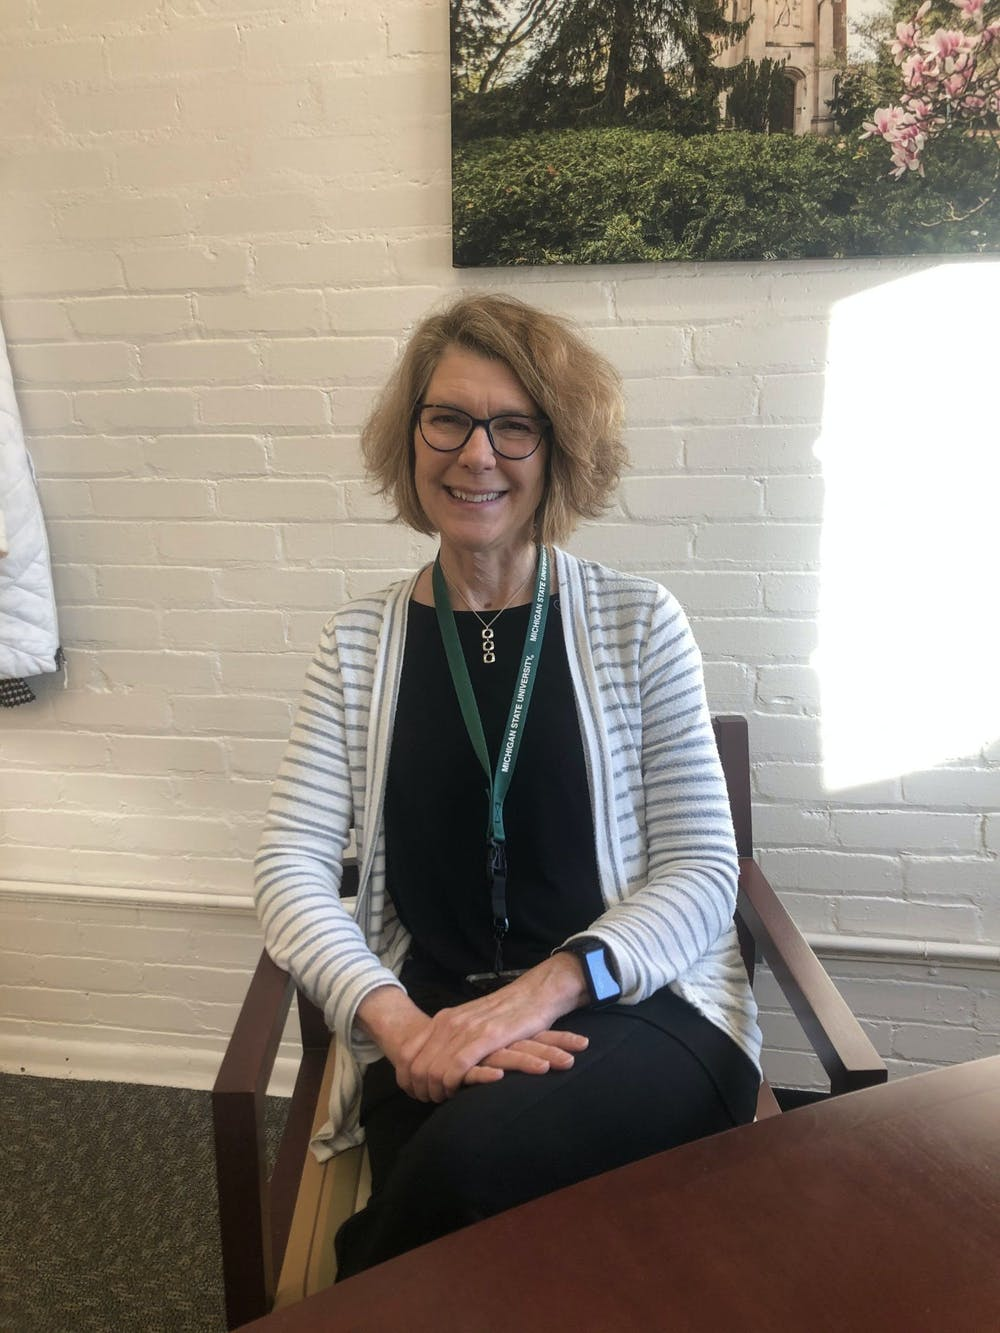 <p>Former Office of Institutional Equity Director Melody Werner poses for a photo in January 2020.</p>